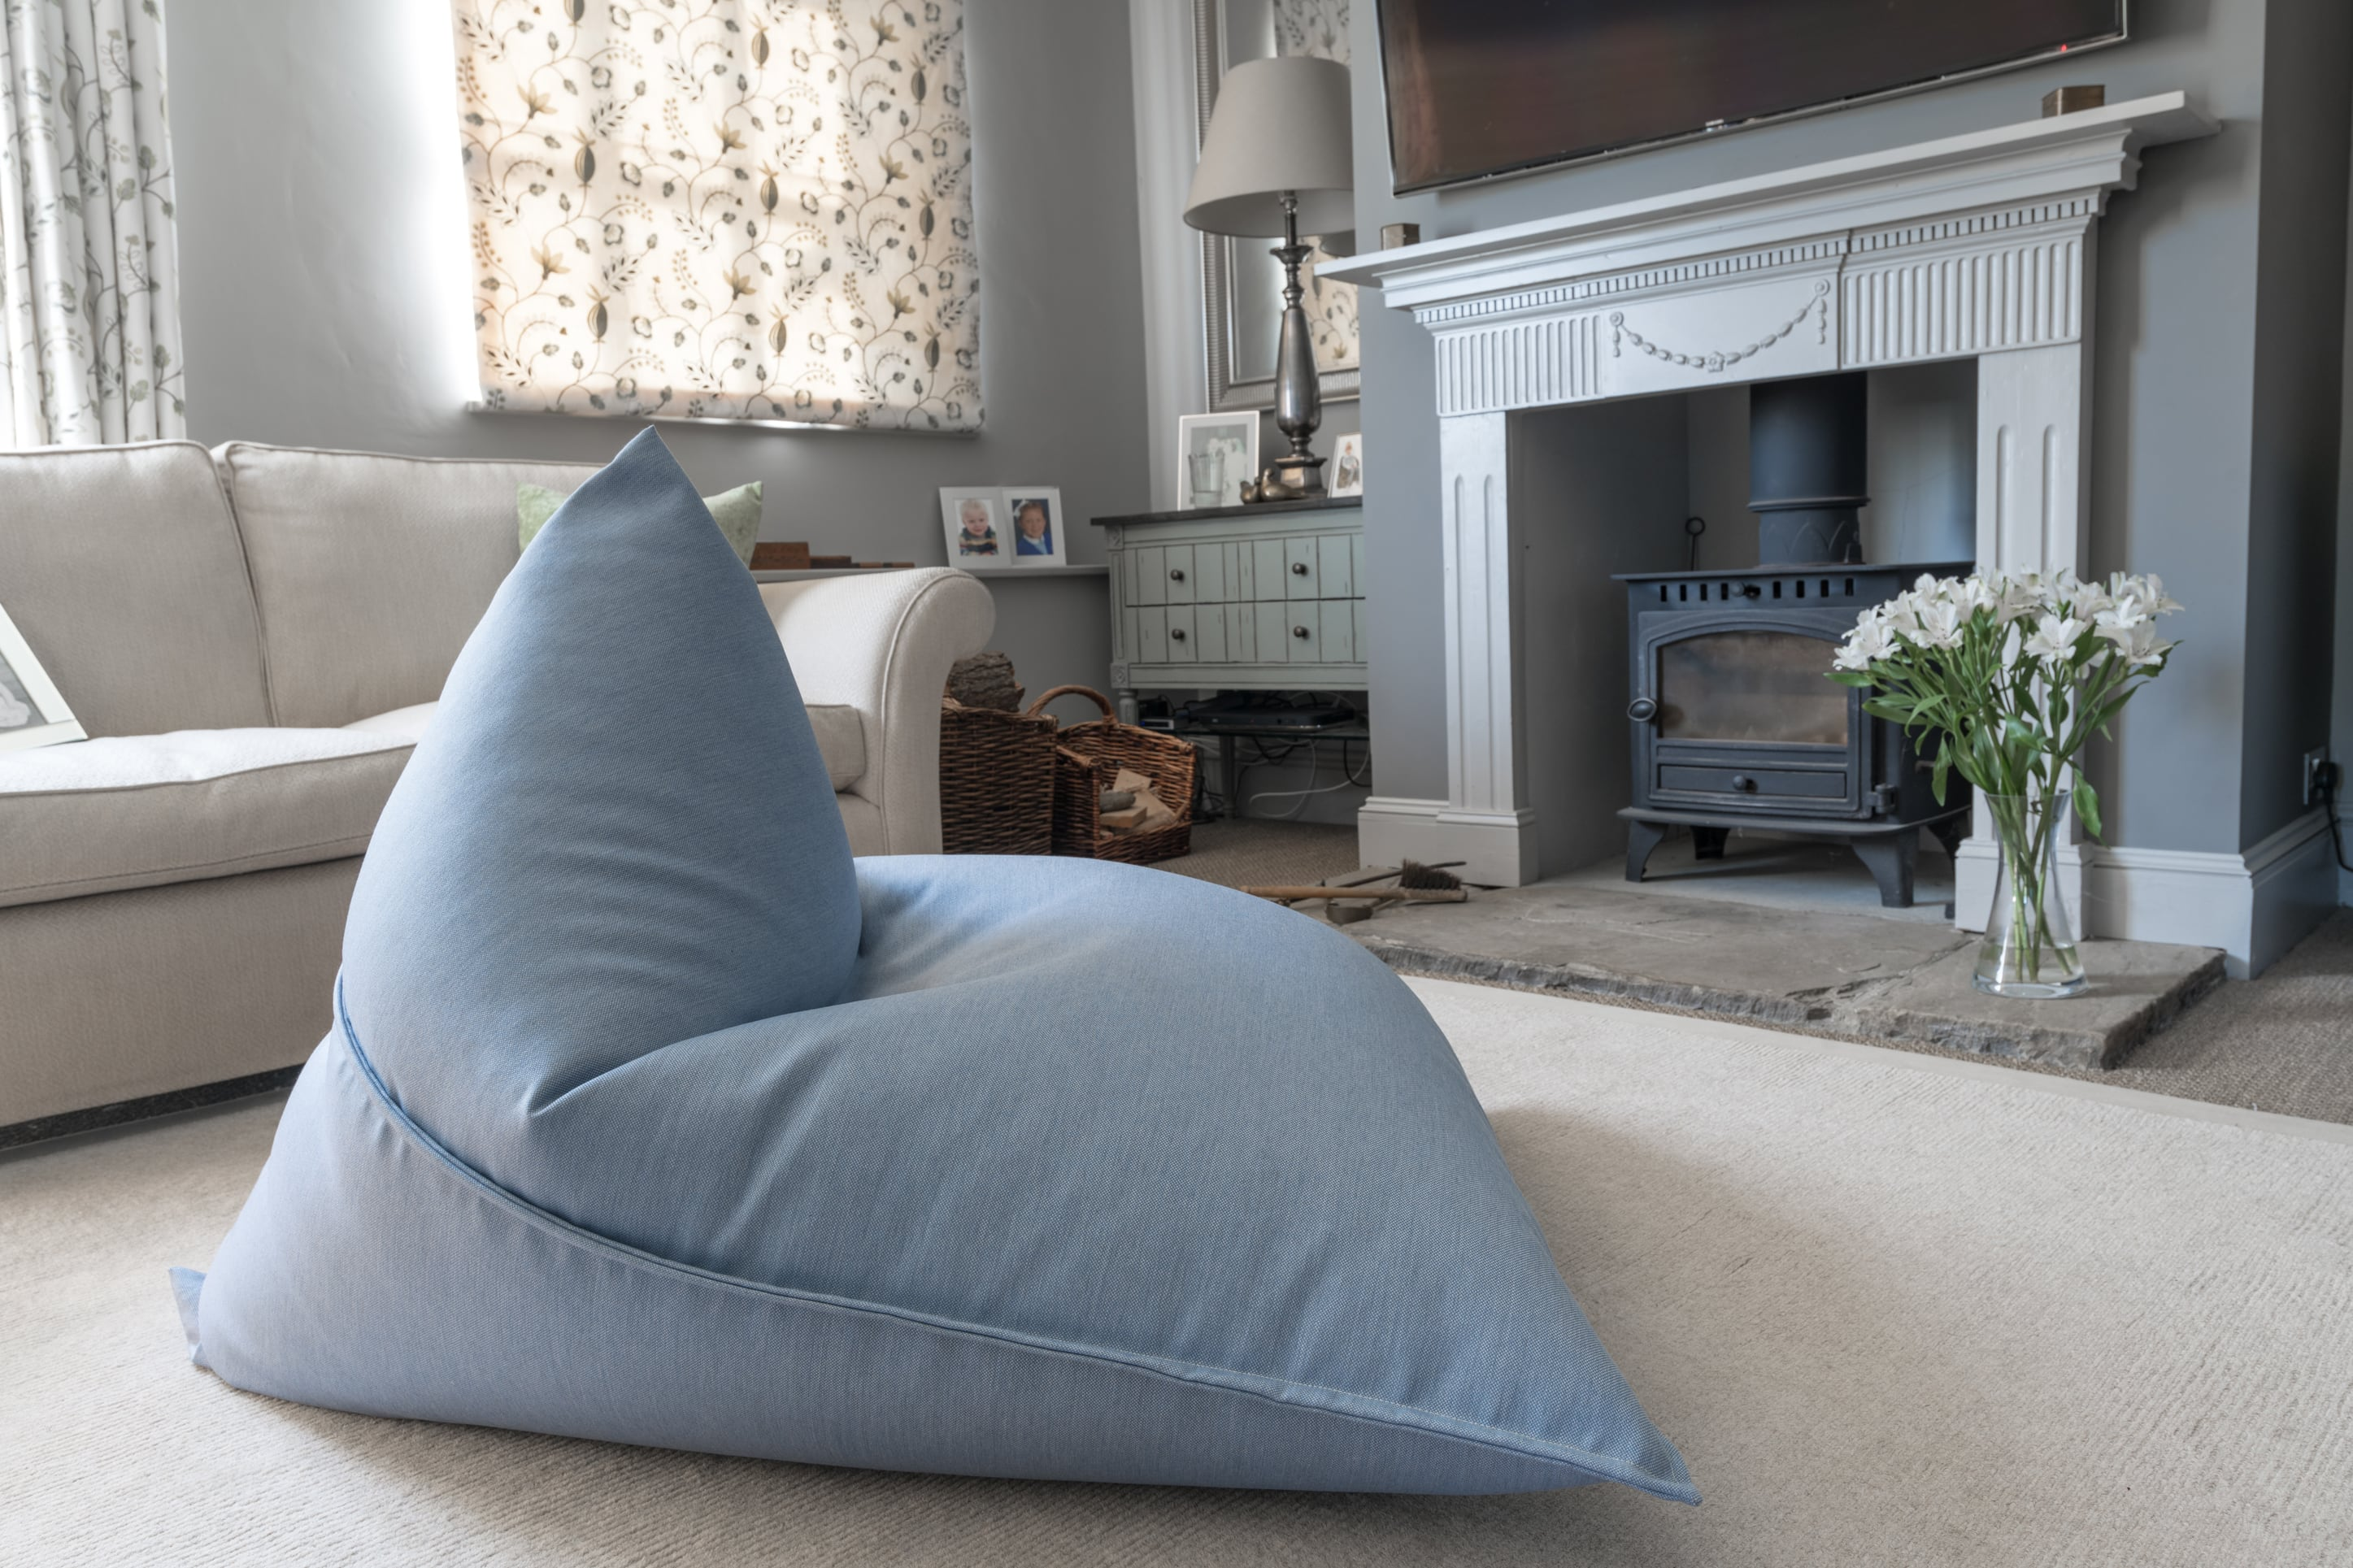 Armadillo Sun bean bag chair in ice blue fabric inside by fireplace